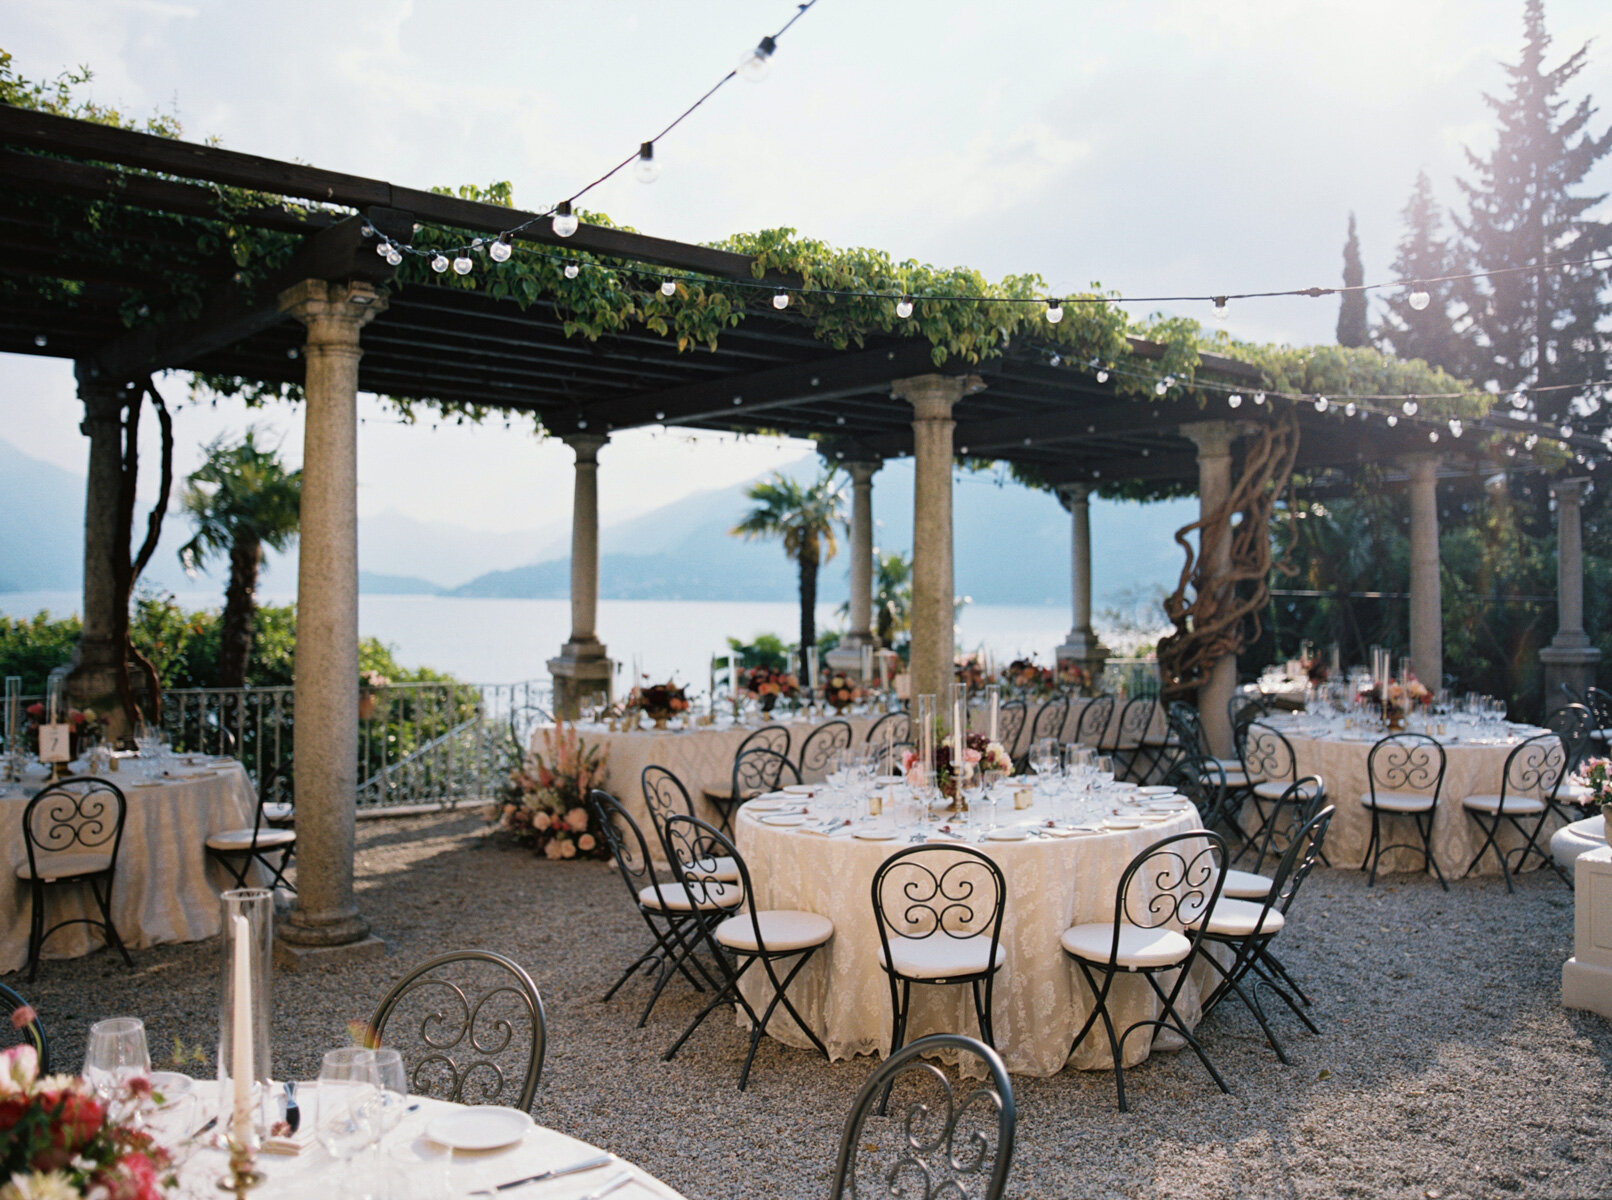 Lake-Como-Villa-Cipressi-Wedding-Katie-Grant-destination-wedding (72 of 93).jpg